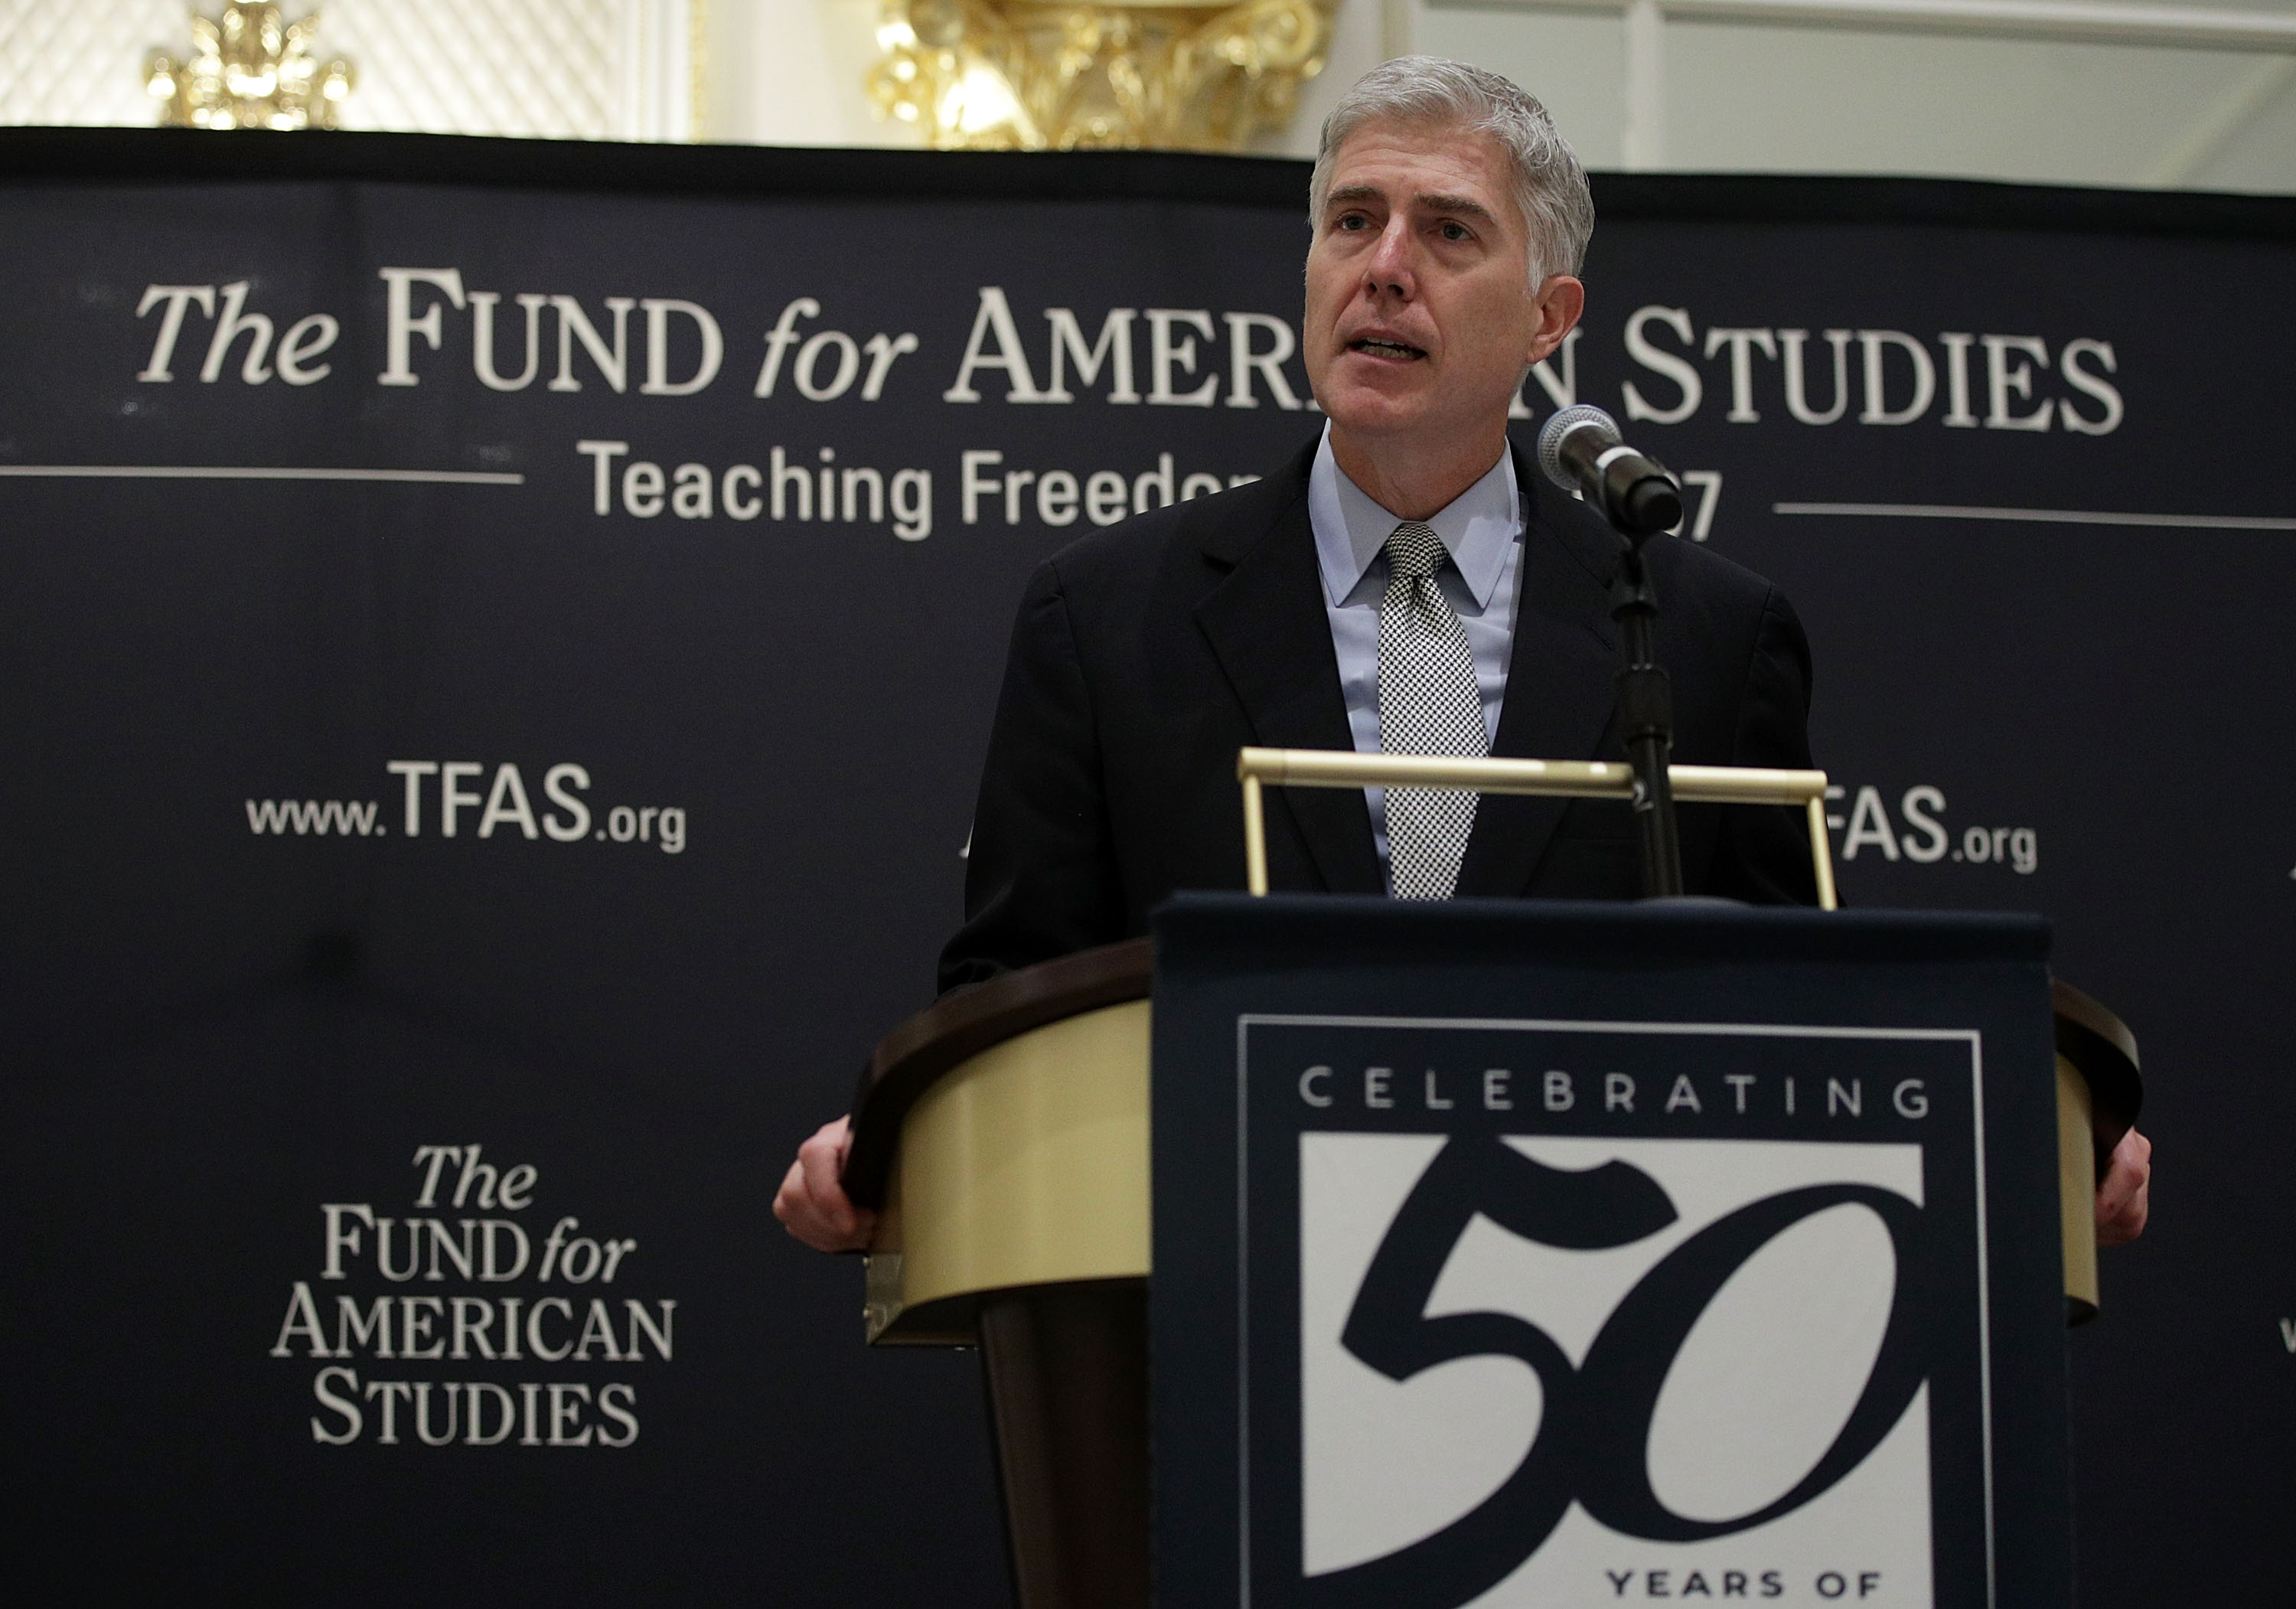 Justice Neil Gorsuch speaks at an event hosted by The Fund for American Studies on September 28, 2017. (Alex Wong/Getty Images)